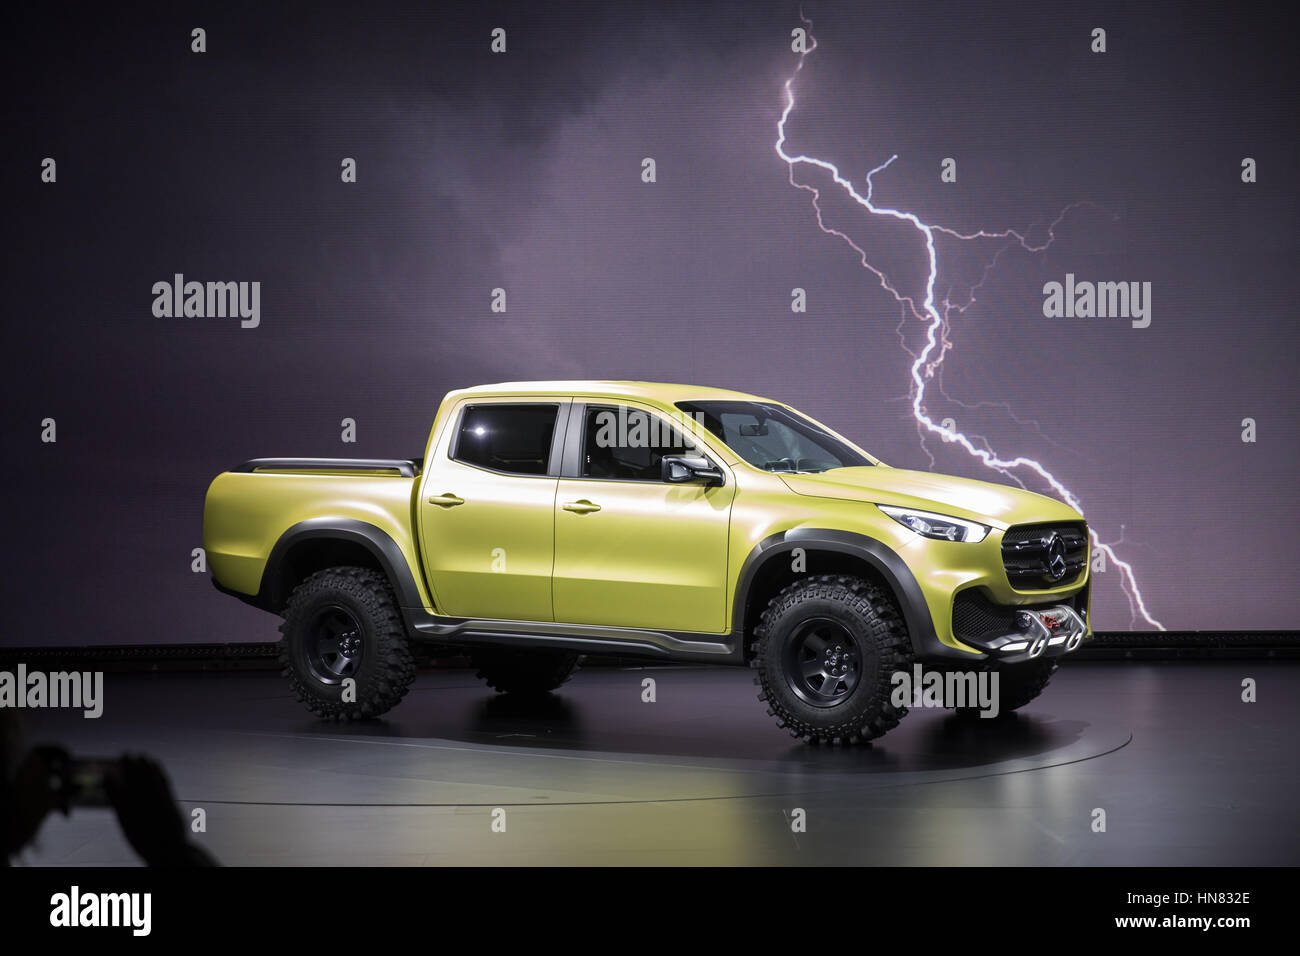 https://c8.alamy.com/comp/HN832E/a-concept-vehicle-type-mercedes-benz-concept-x-class-of-the-automobile-HN832E.jpg